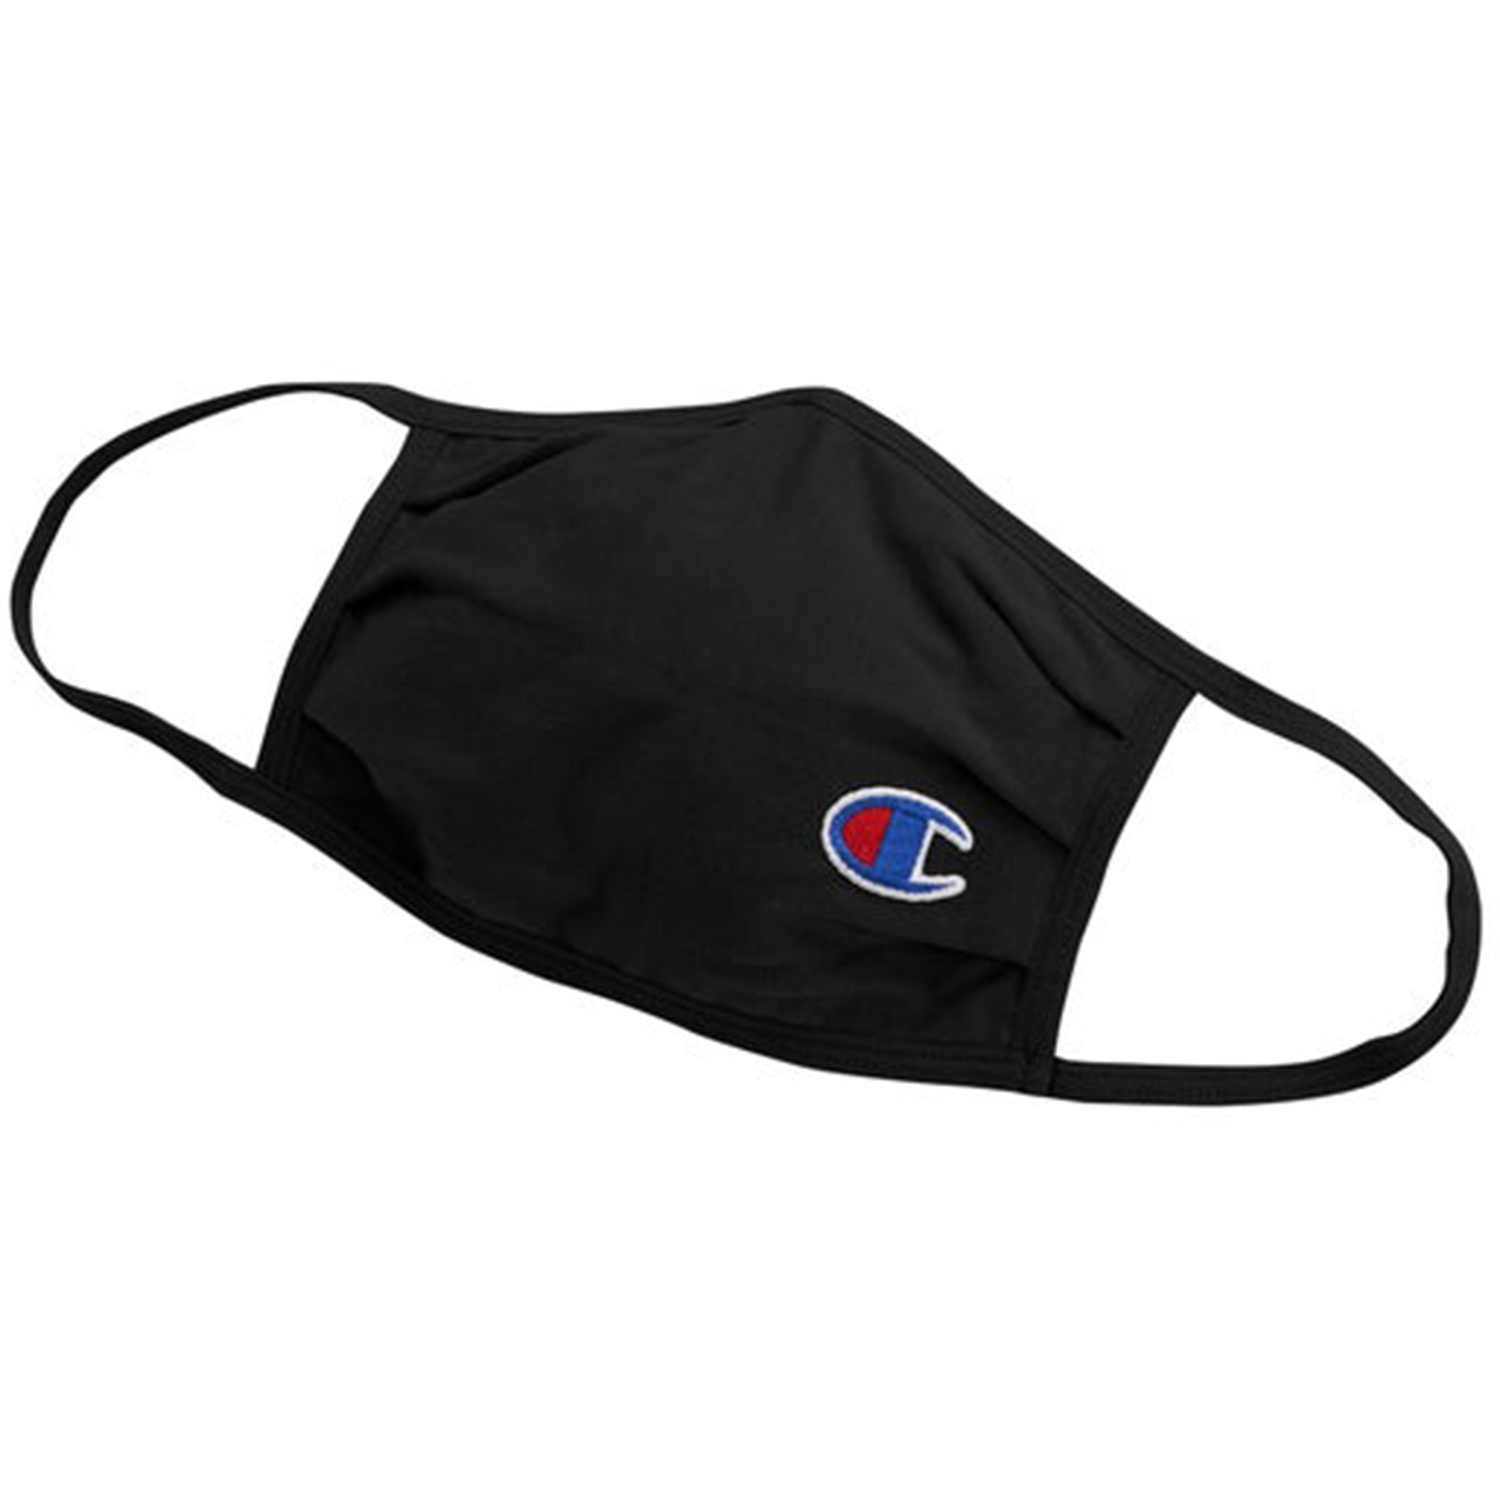 CHAMPION Cotton Wicking Face Mask